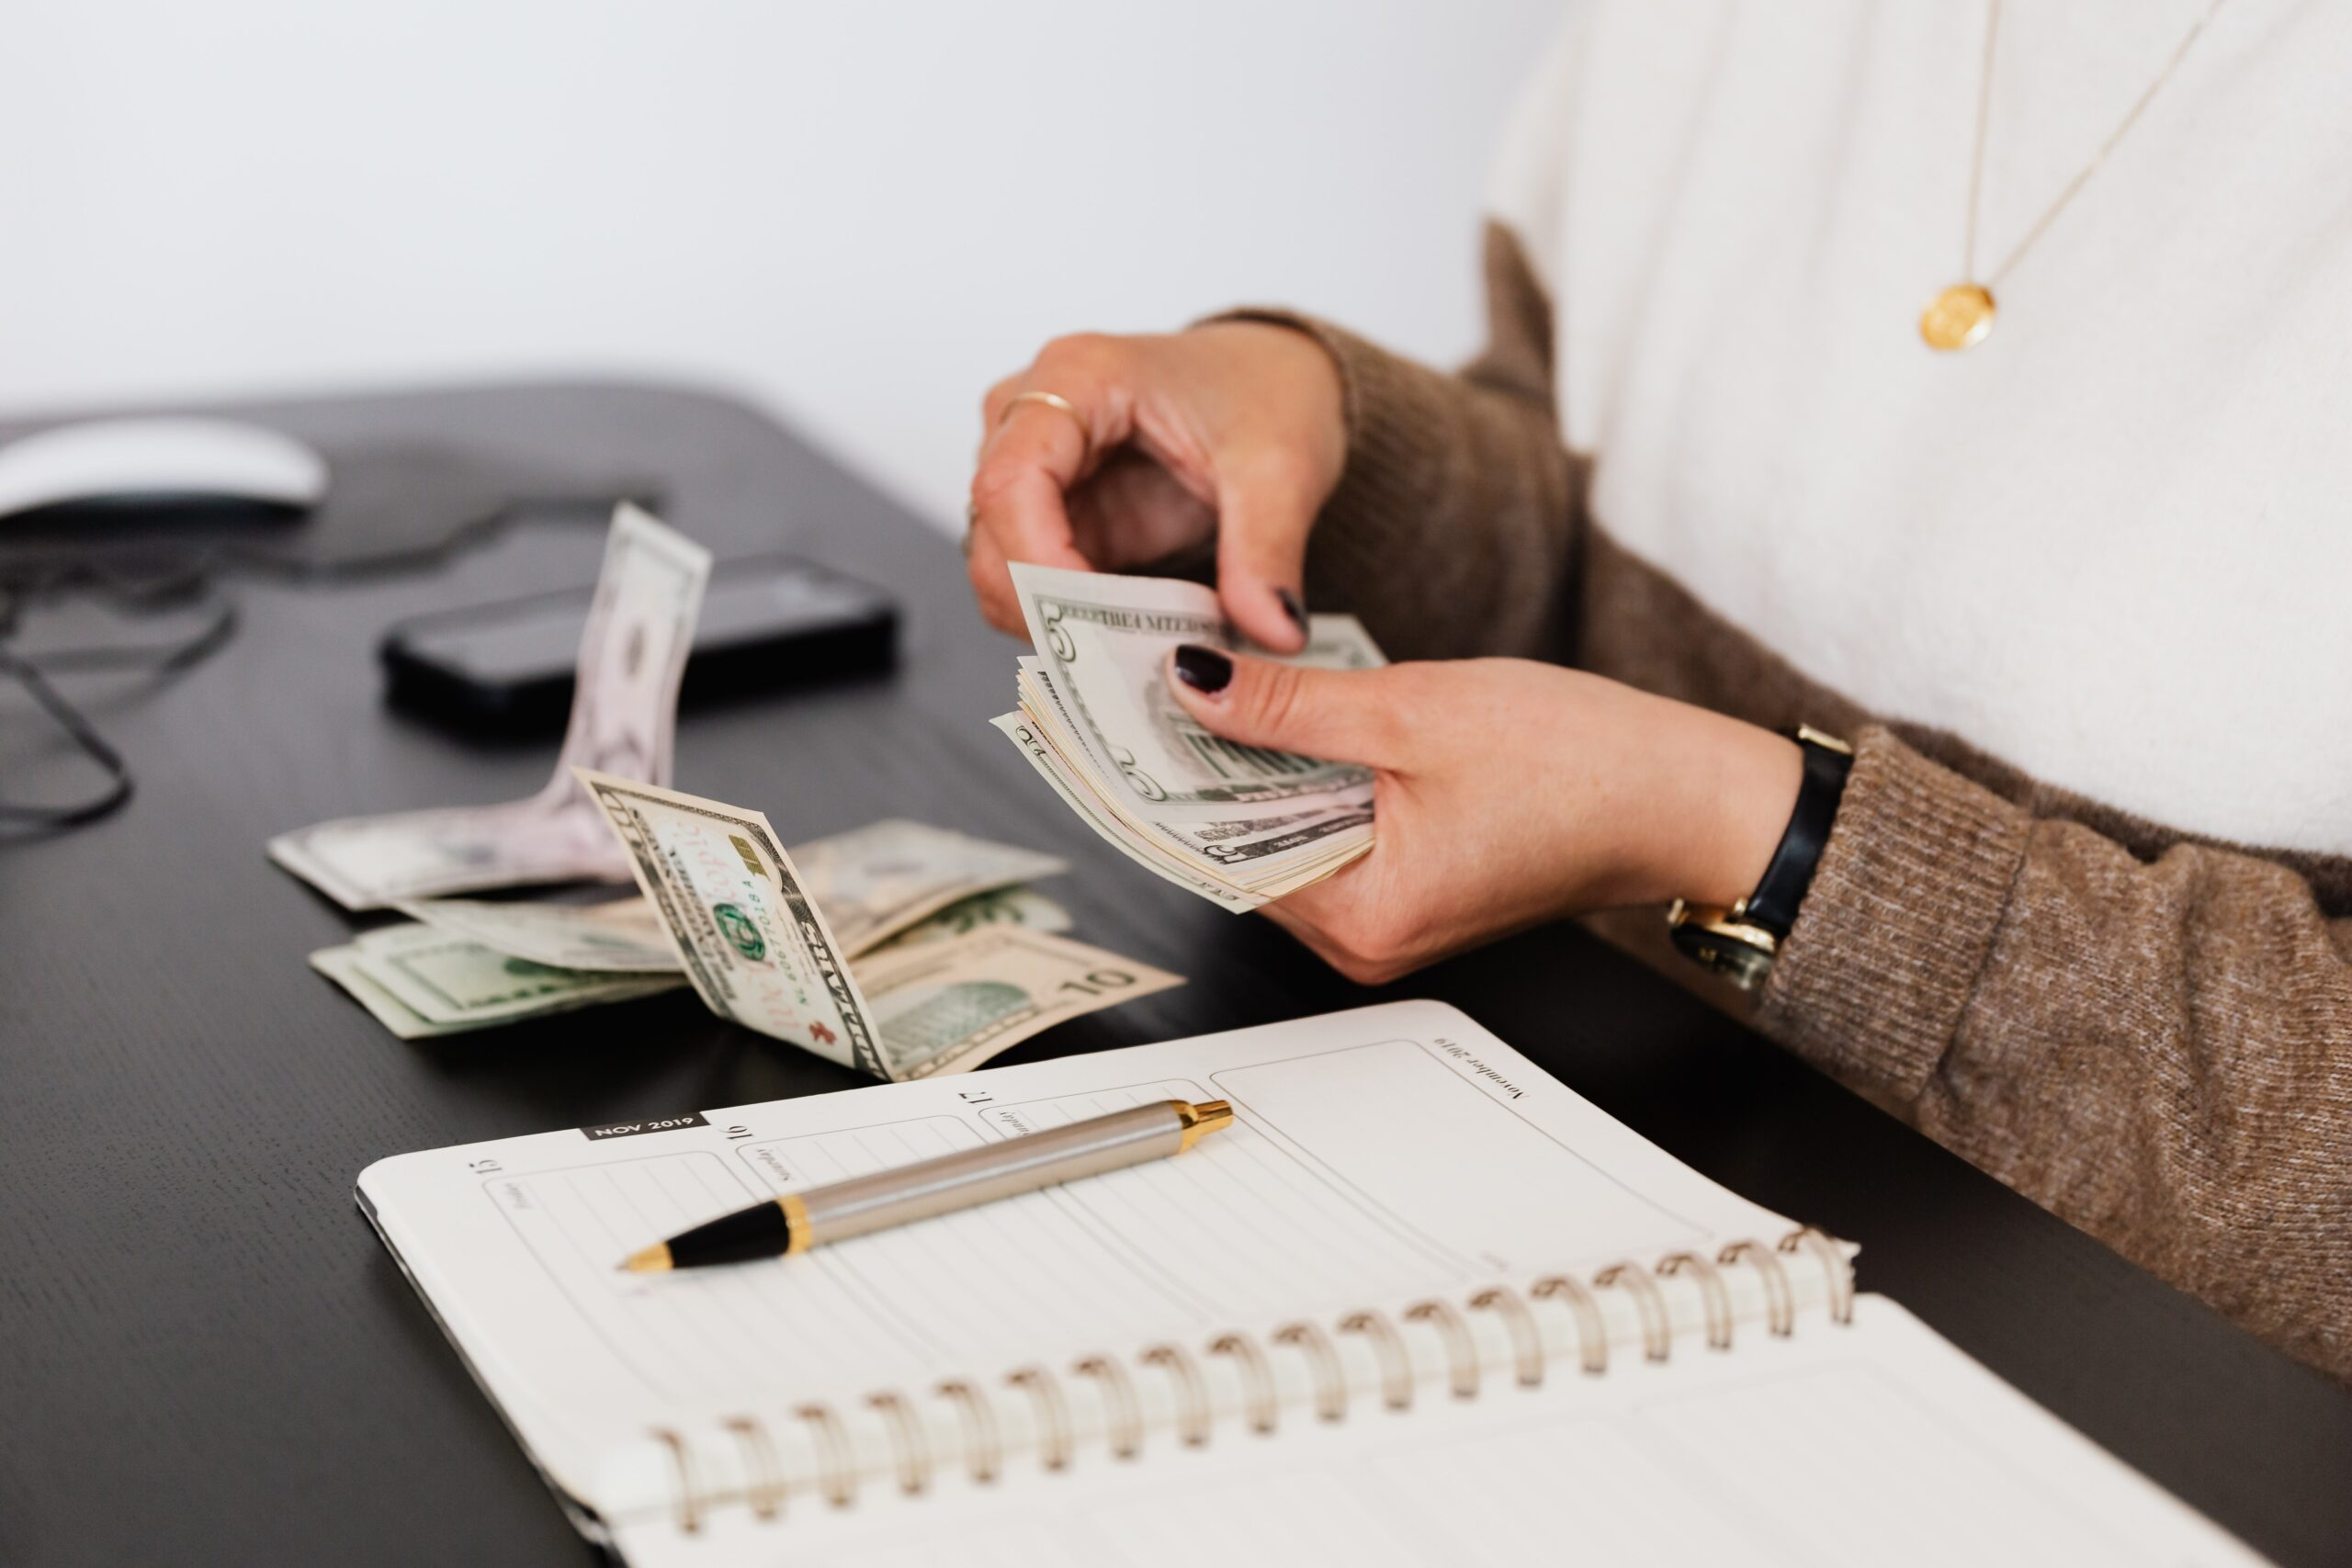 Get Paid to Give Your Point of view at Focus Groups and get extra money